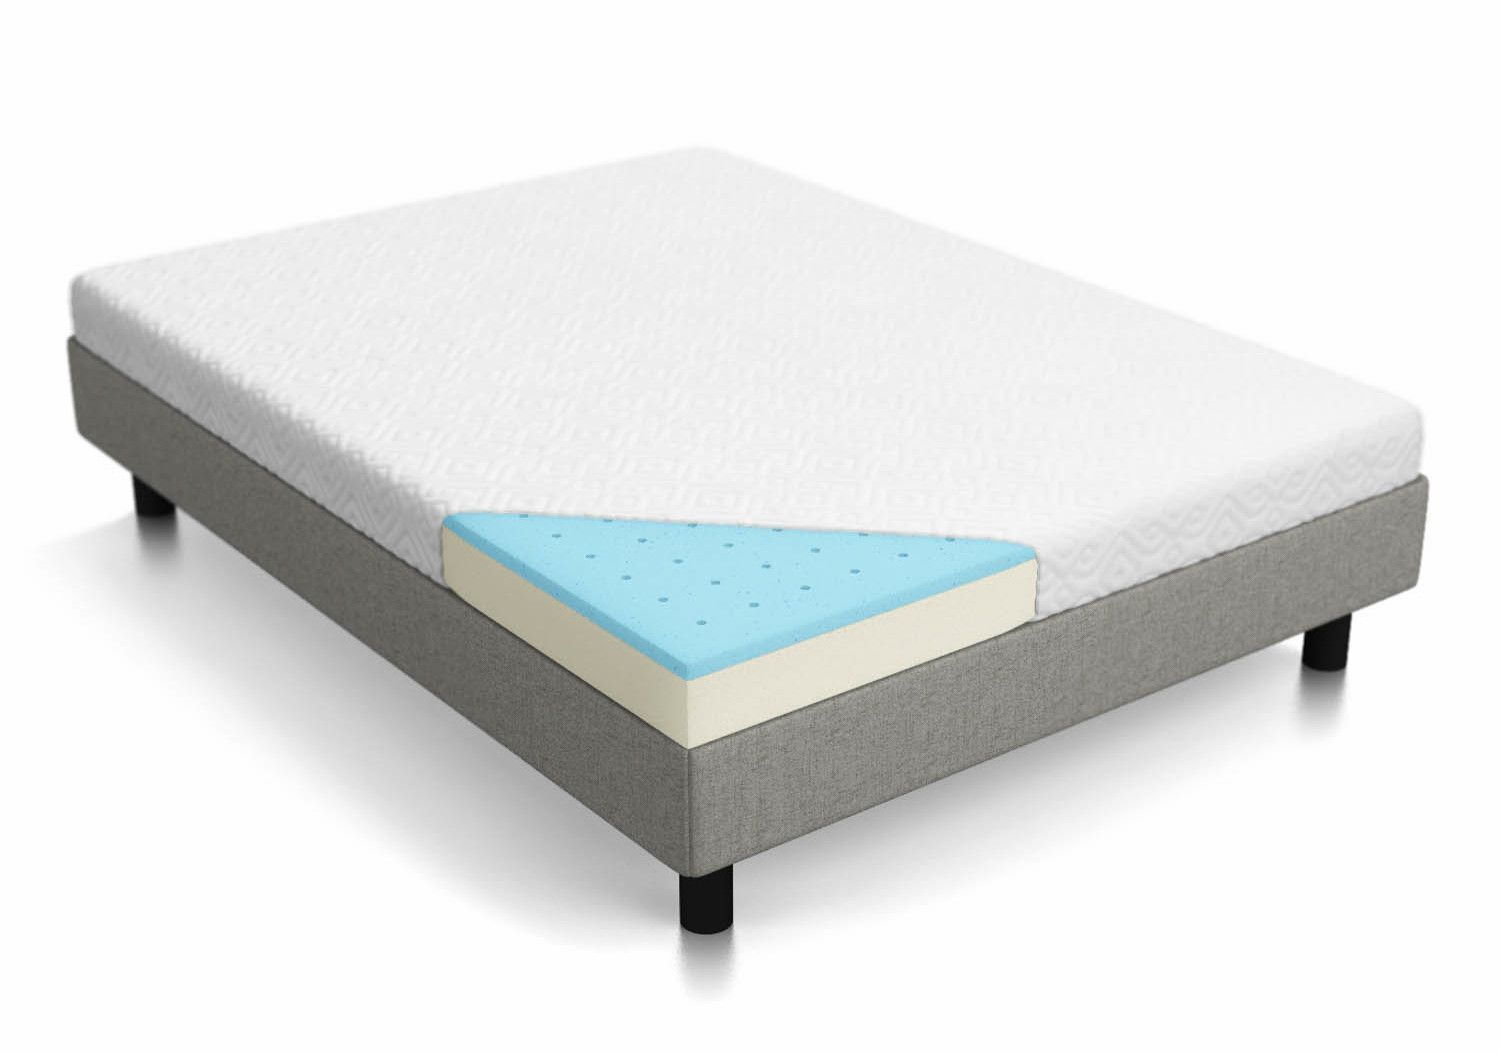 5 Firm Gel Memory Foam Mattress Mattress Foam Mattress Memory